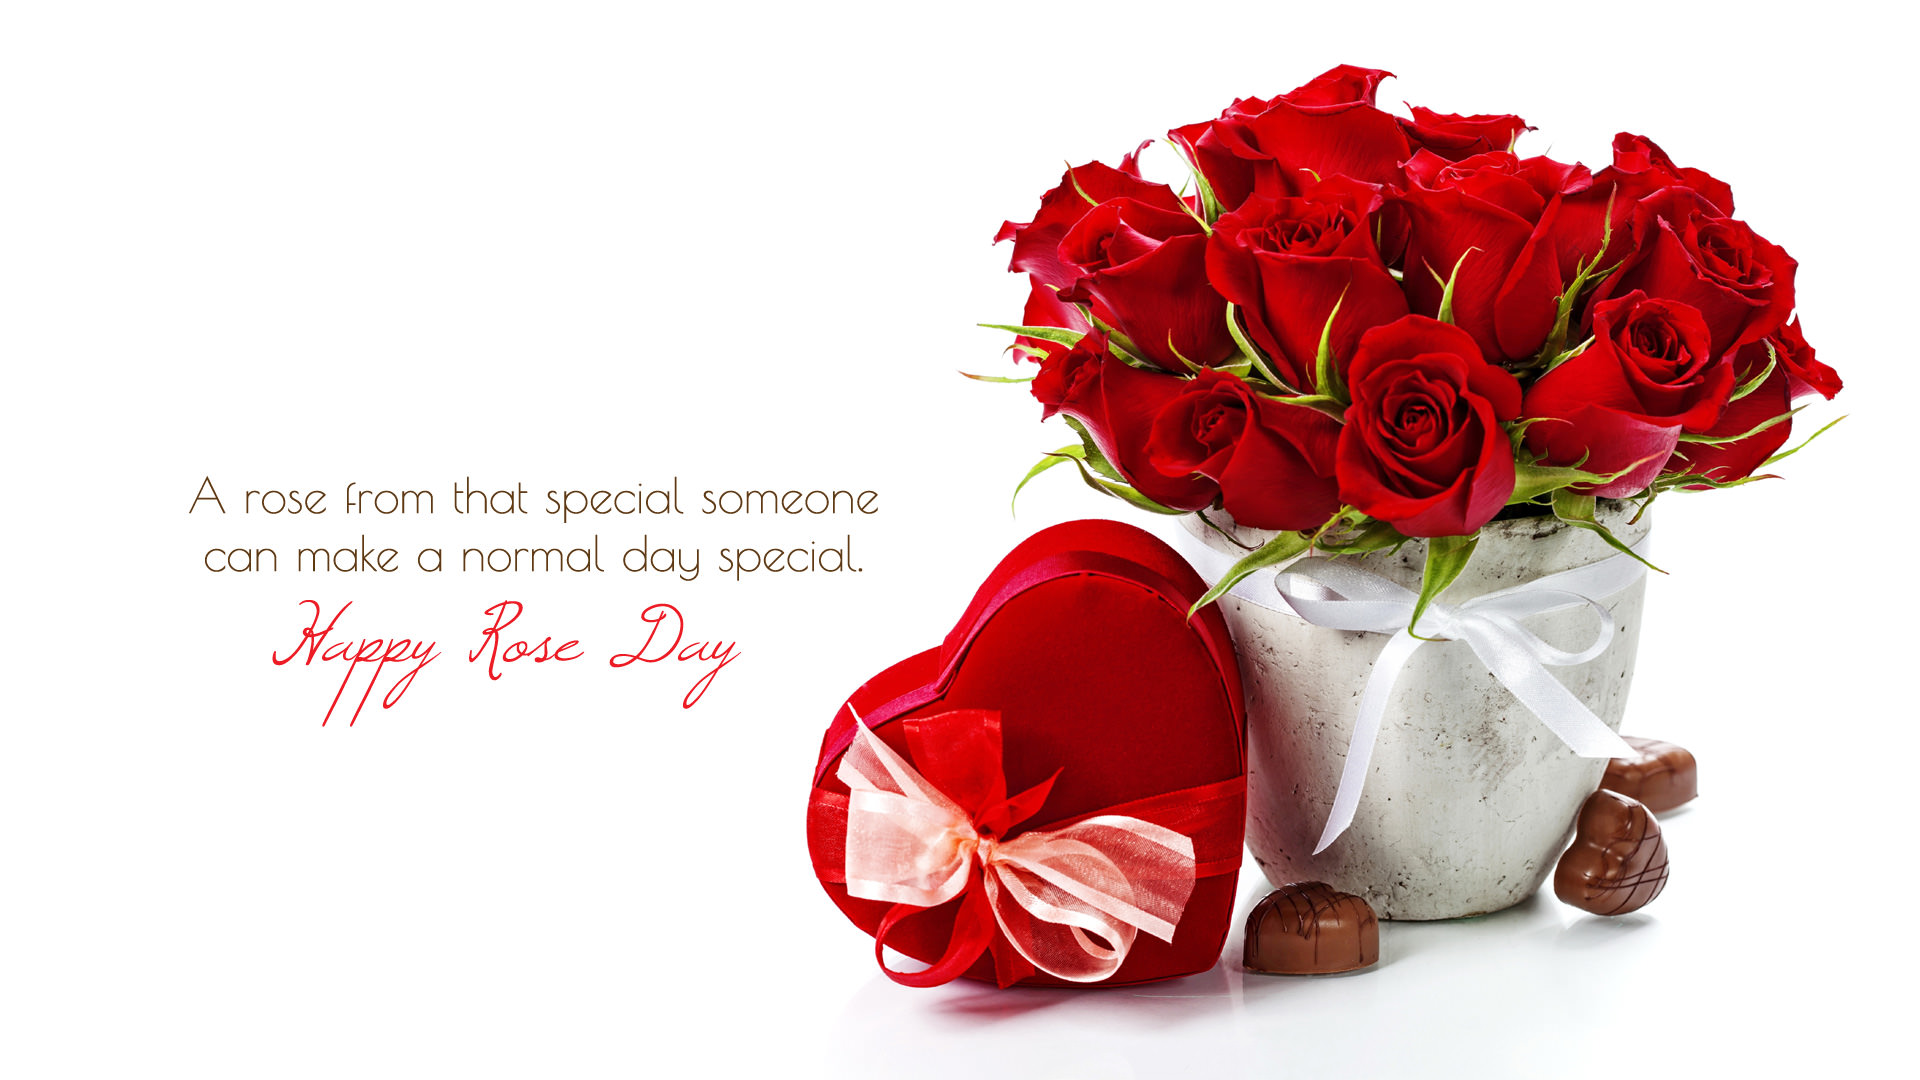 Red Rose Day Wishes Wallpaper